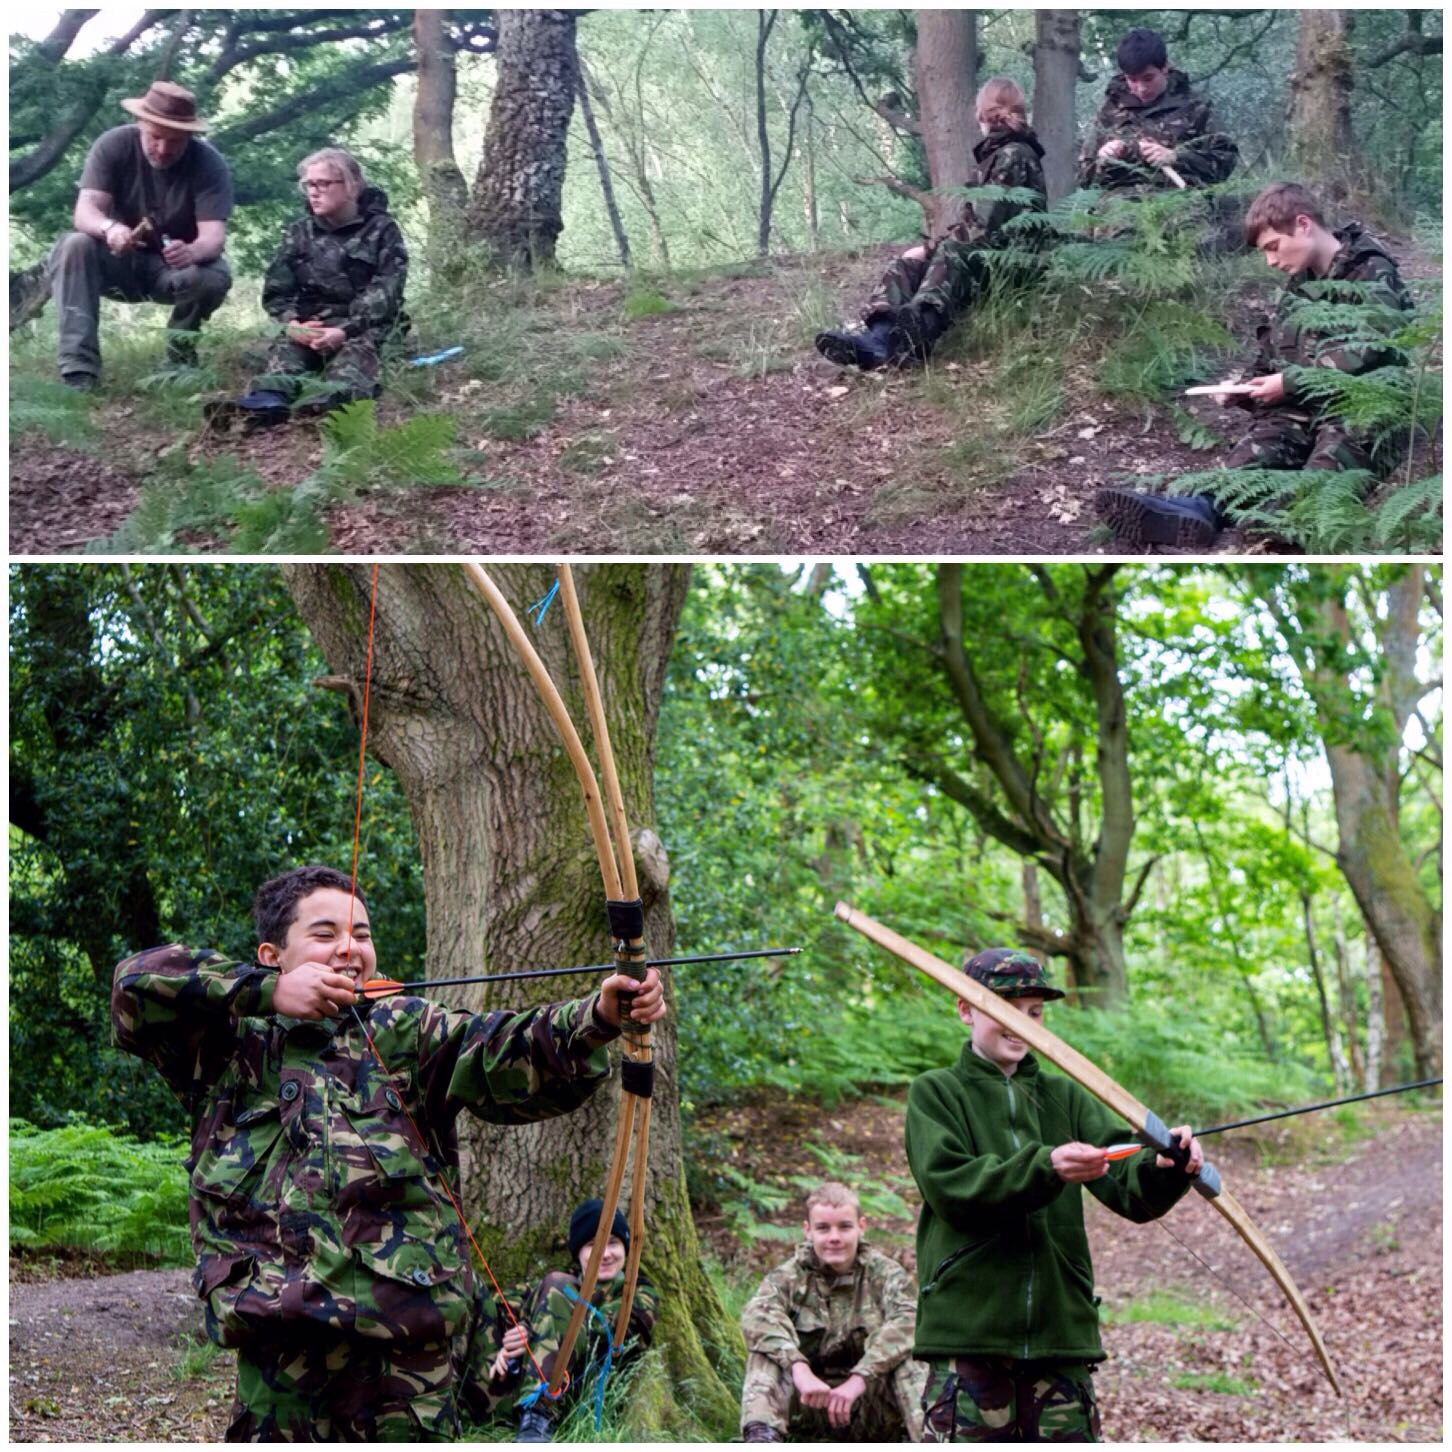 More knife work and archery